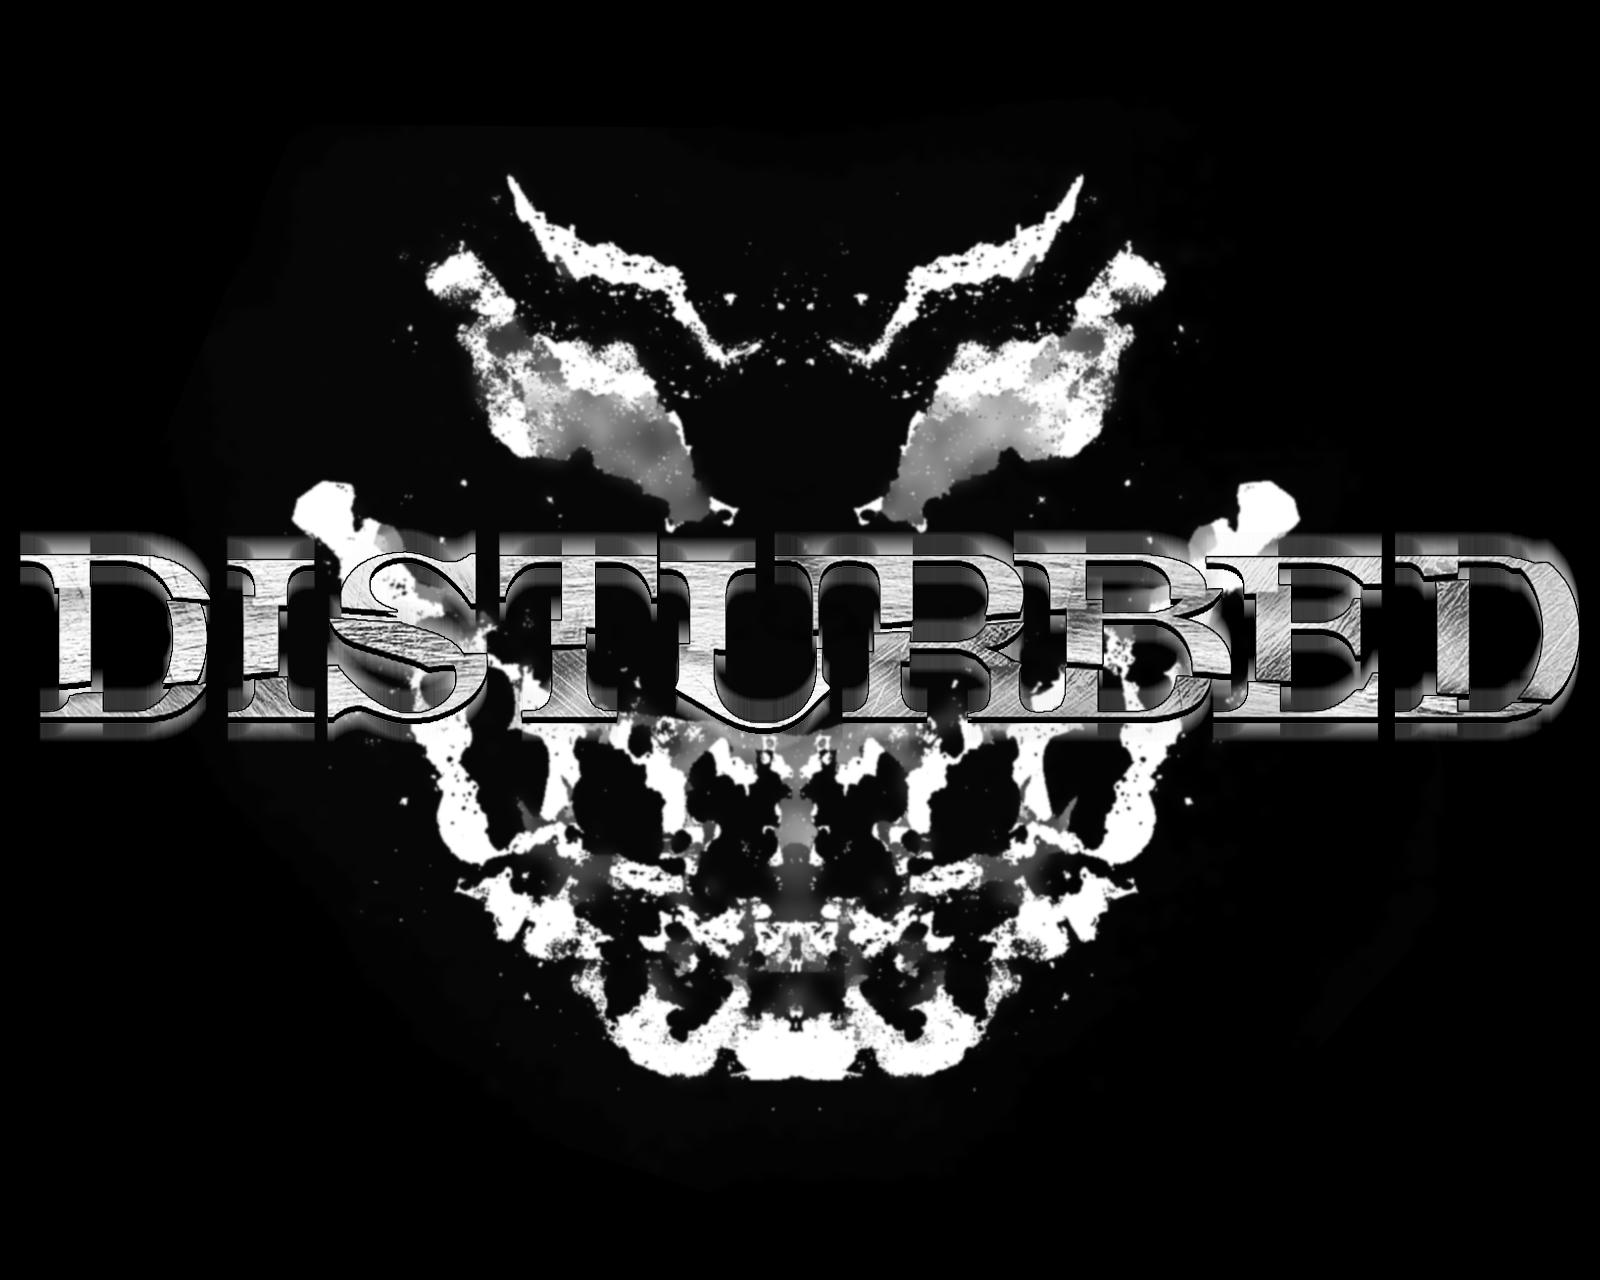 Pin Disturbed Wallpaper Logo on Pinterest